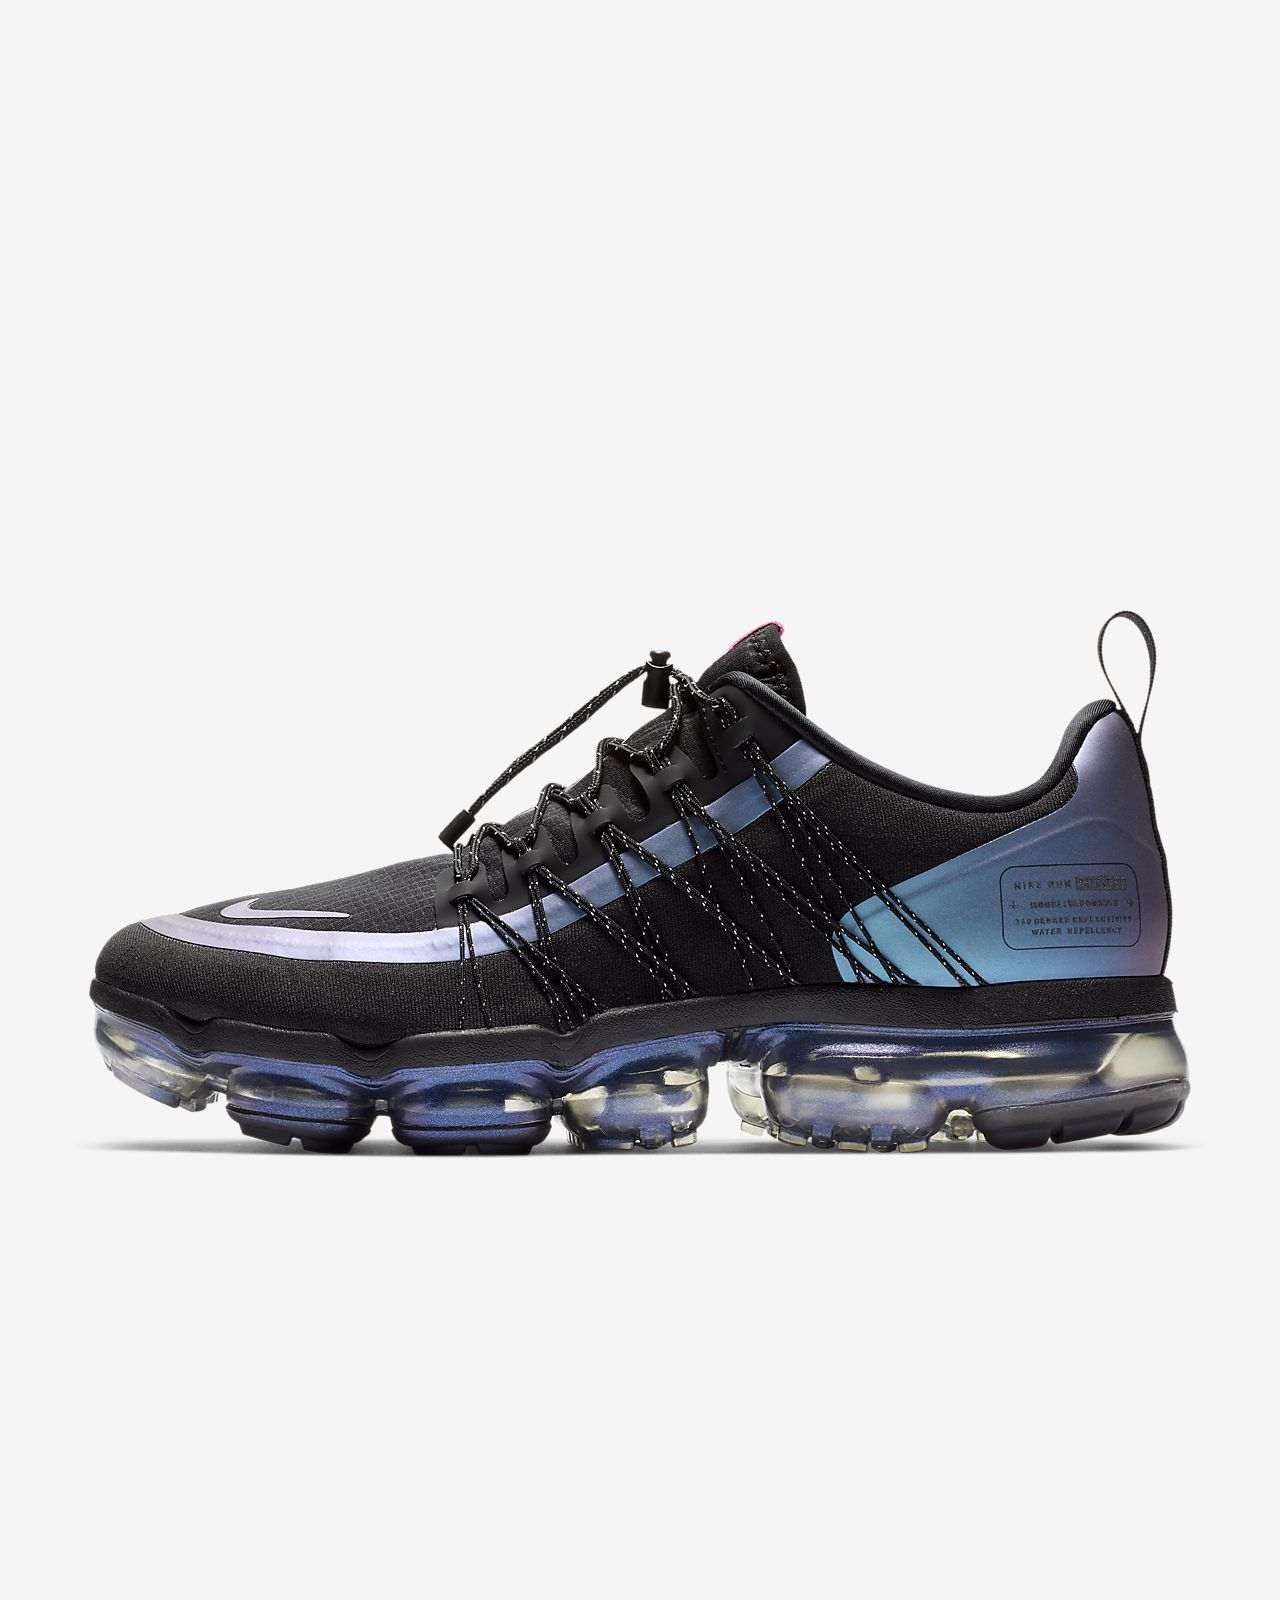 5d1af0791e7 Nike Air VaporMax Utility Men s Shoe. Nike.com GB